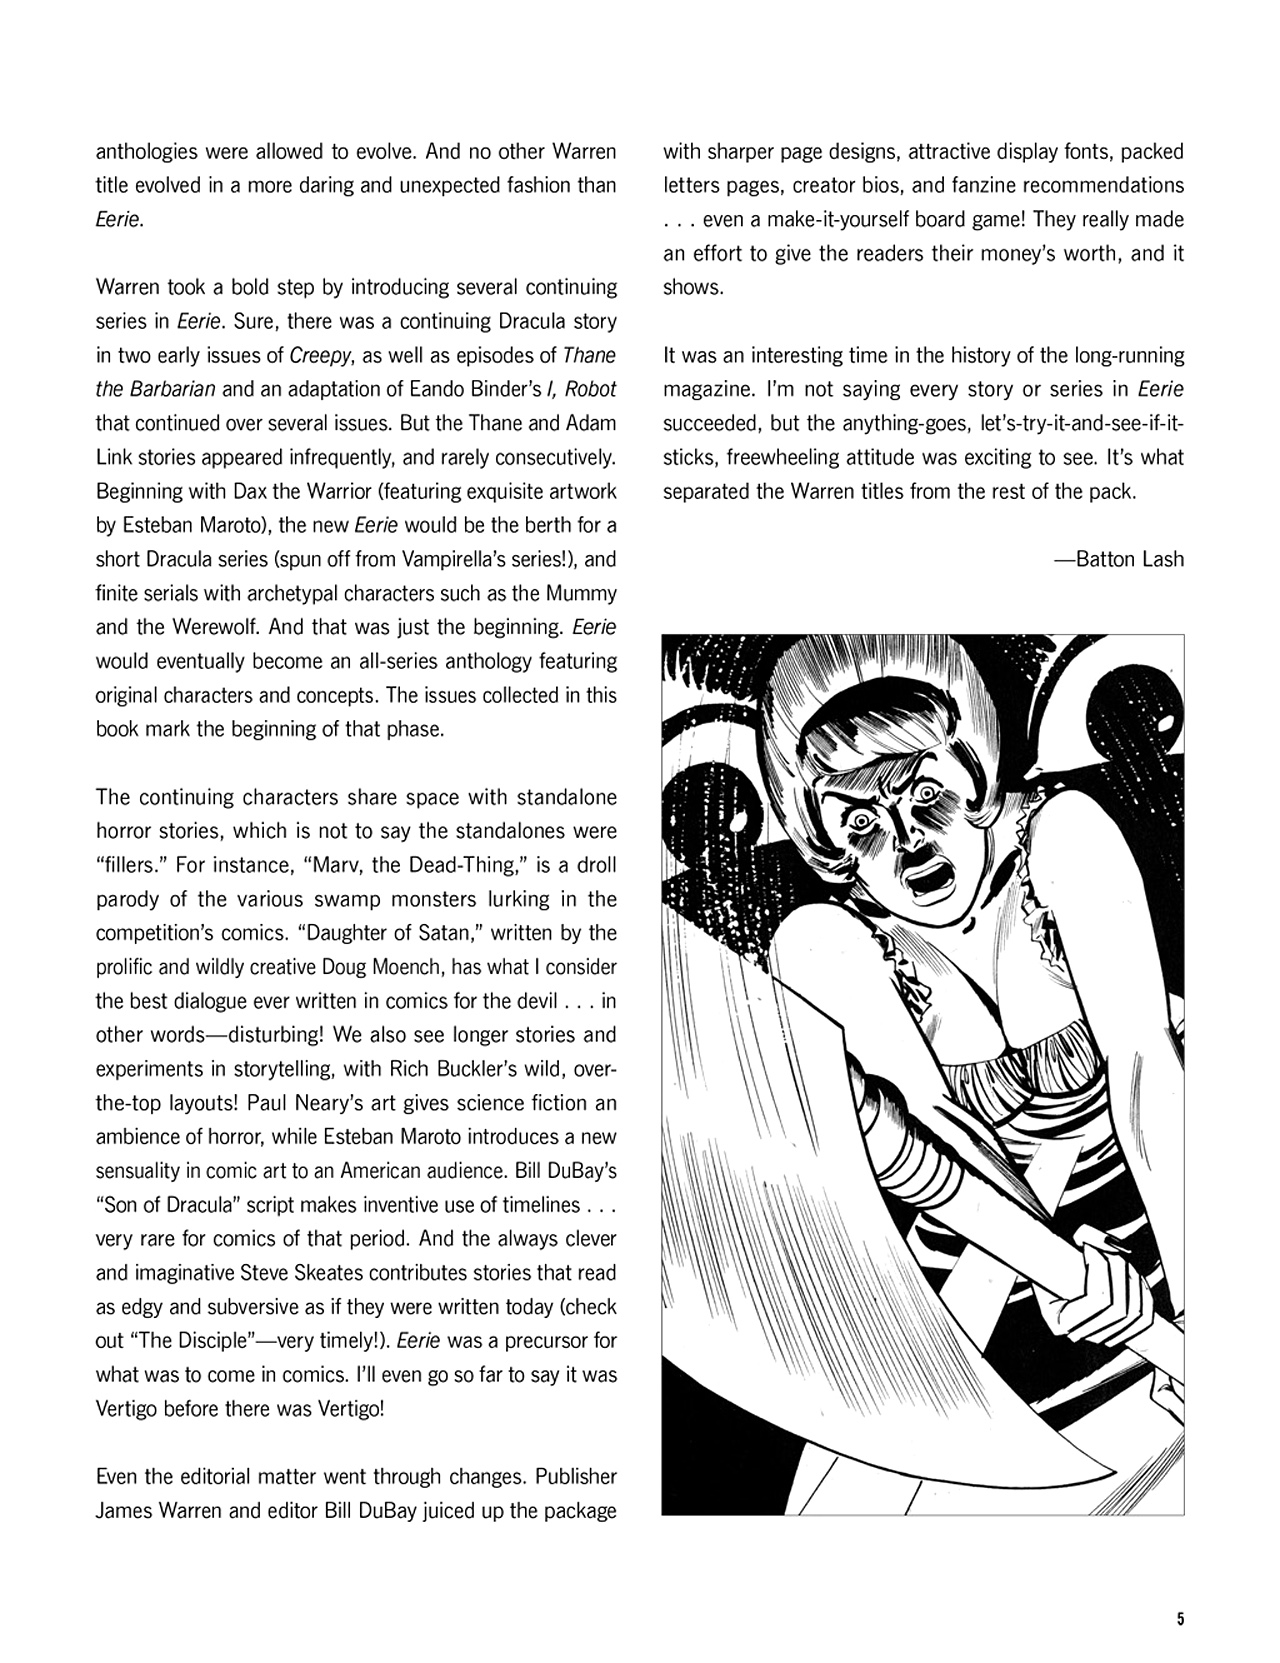 Read online Eerie Archives comic -  Issue # TPB 10 - 6